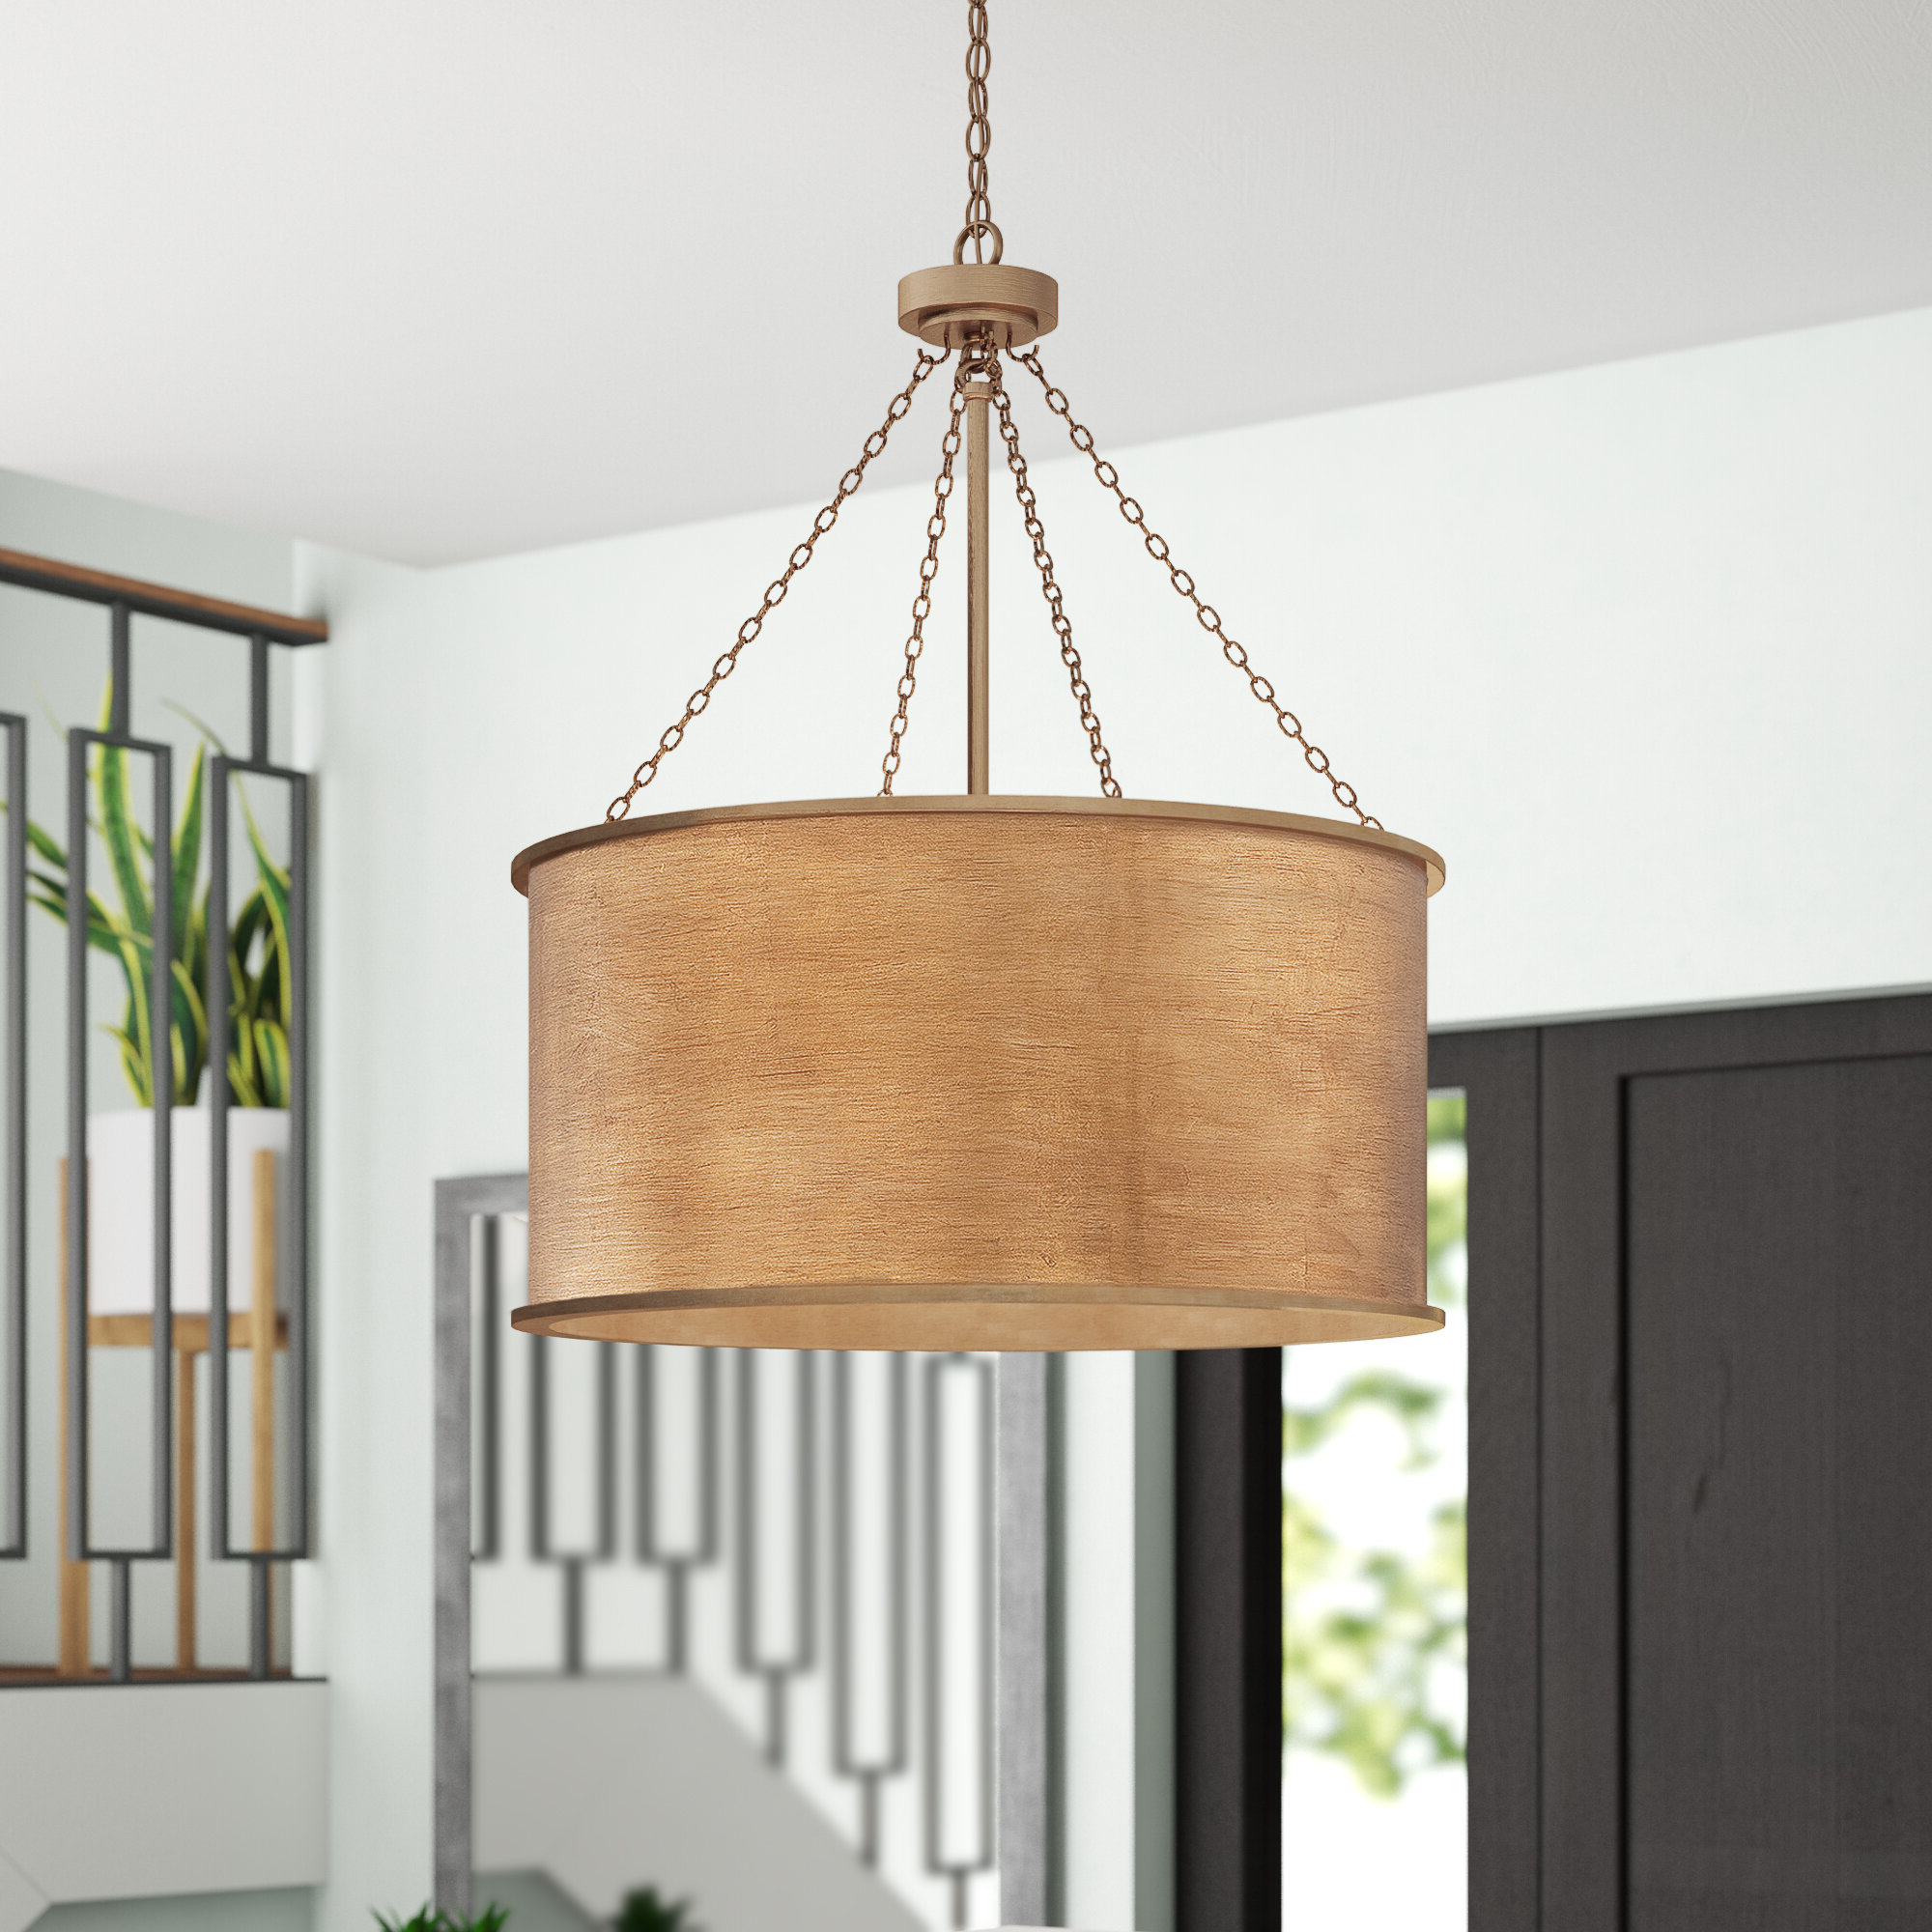 Well Known Cranston 4 Light Drum Chandelier Throughout Dailey 4 Light Drum Chandeliers (Gallery 5 of 20)